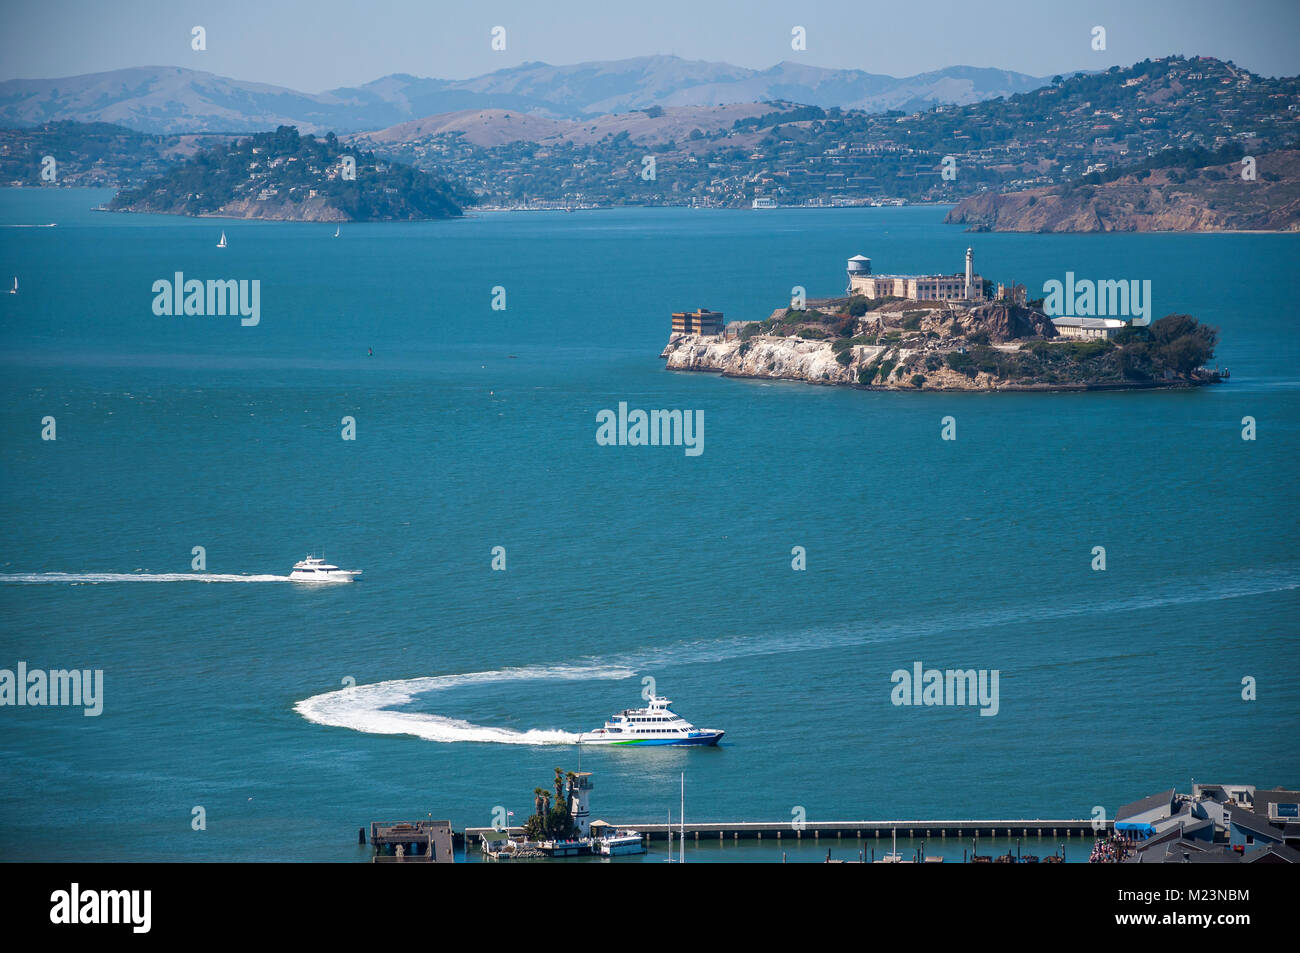 SAN FRANCISCO, CALIFORNIA - SEPTEMBER 9, 2015 - View of Pier 39 and Alcatraz Island from Coit Tower - Stock Image